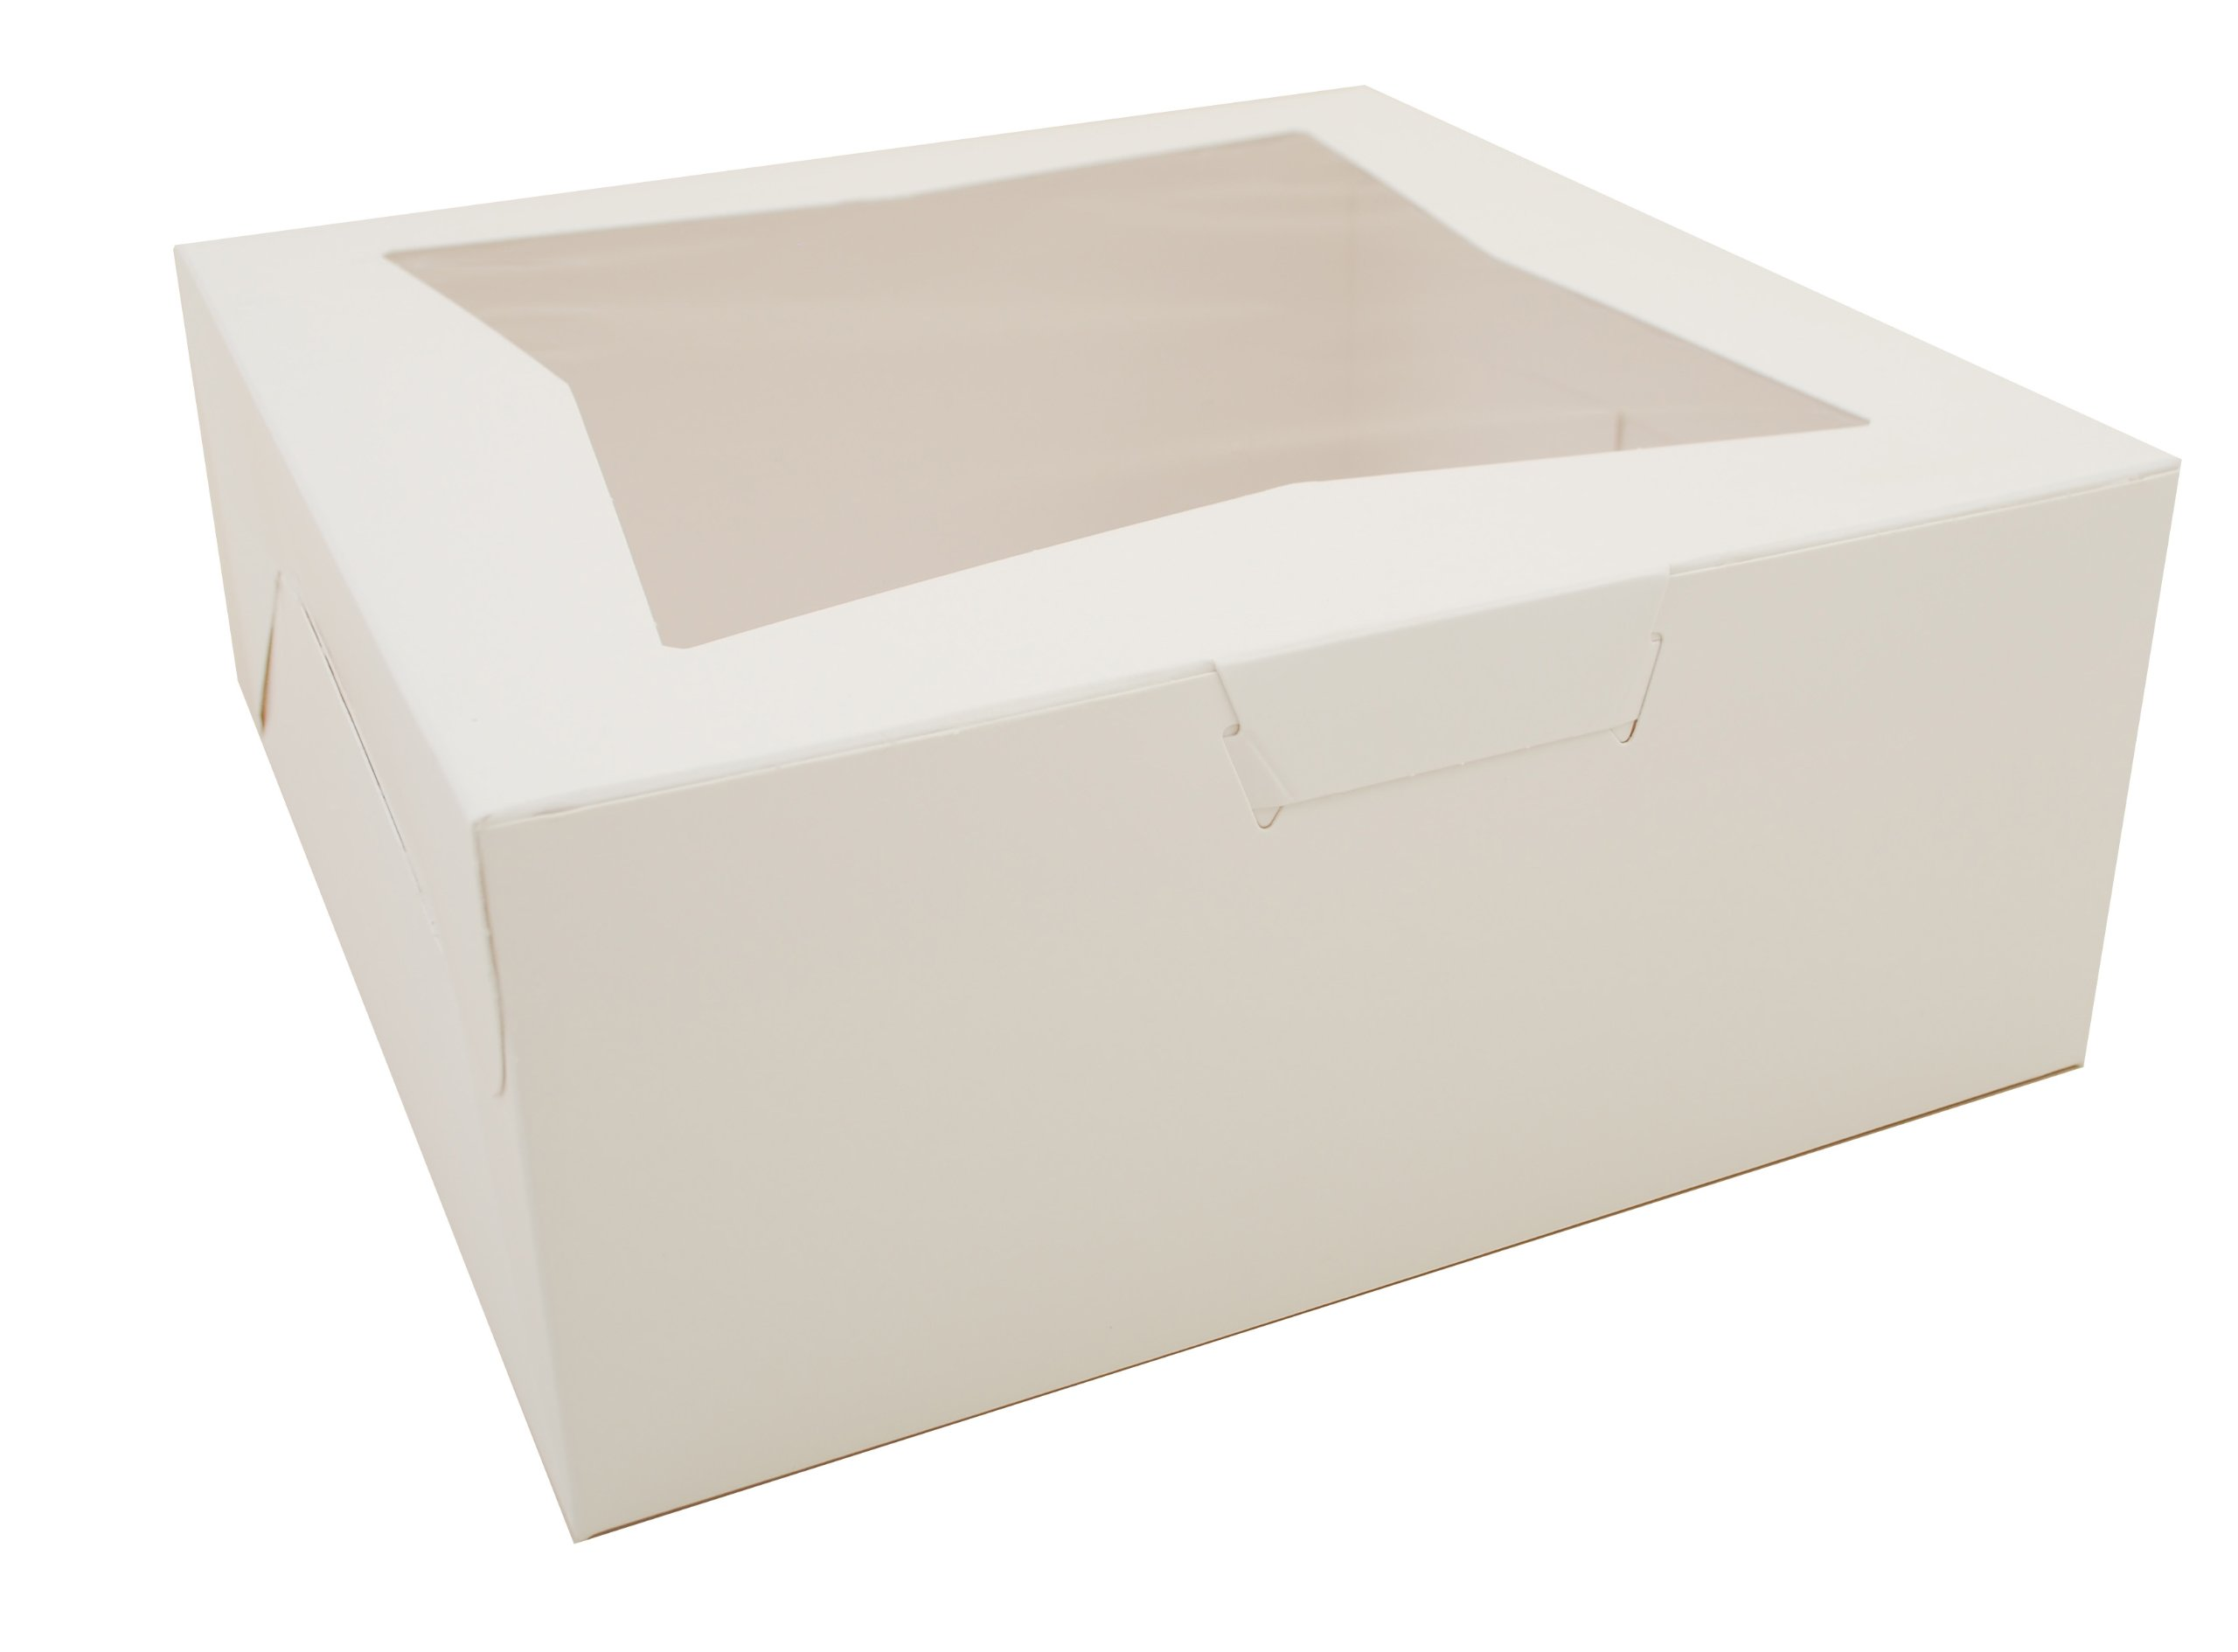 Southern Champion Tray 23073 Paperboard White Lock Corner Window Bakery Box, 12'' Length x 12'' Width x 5'' Height (Case of 100)